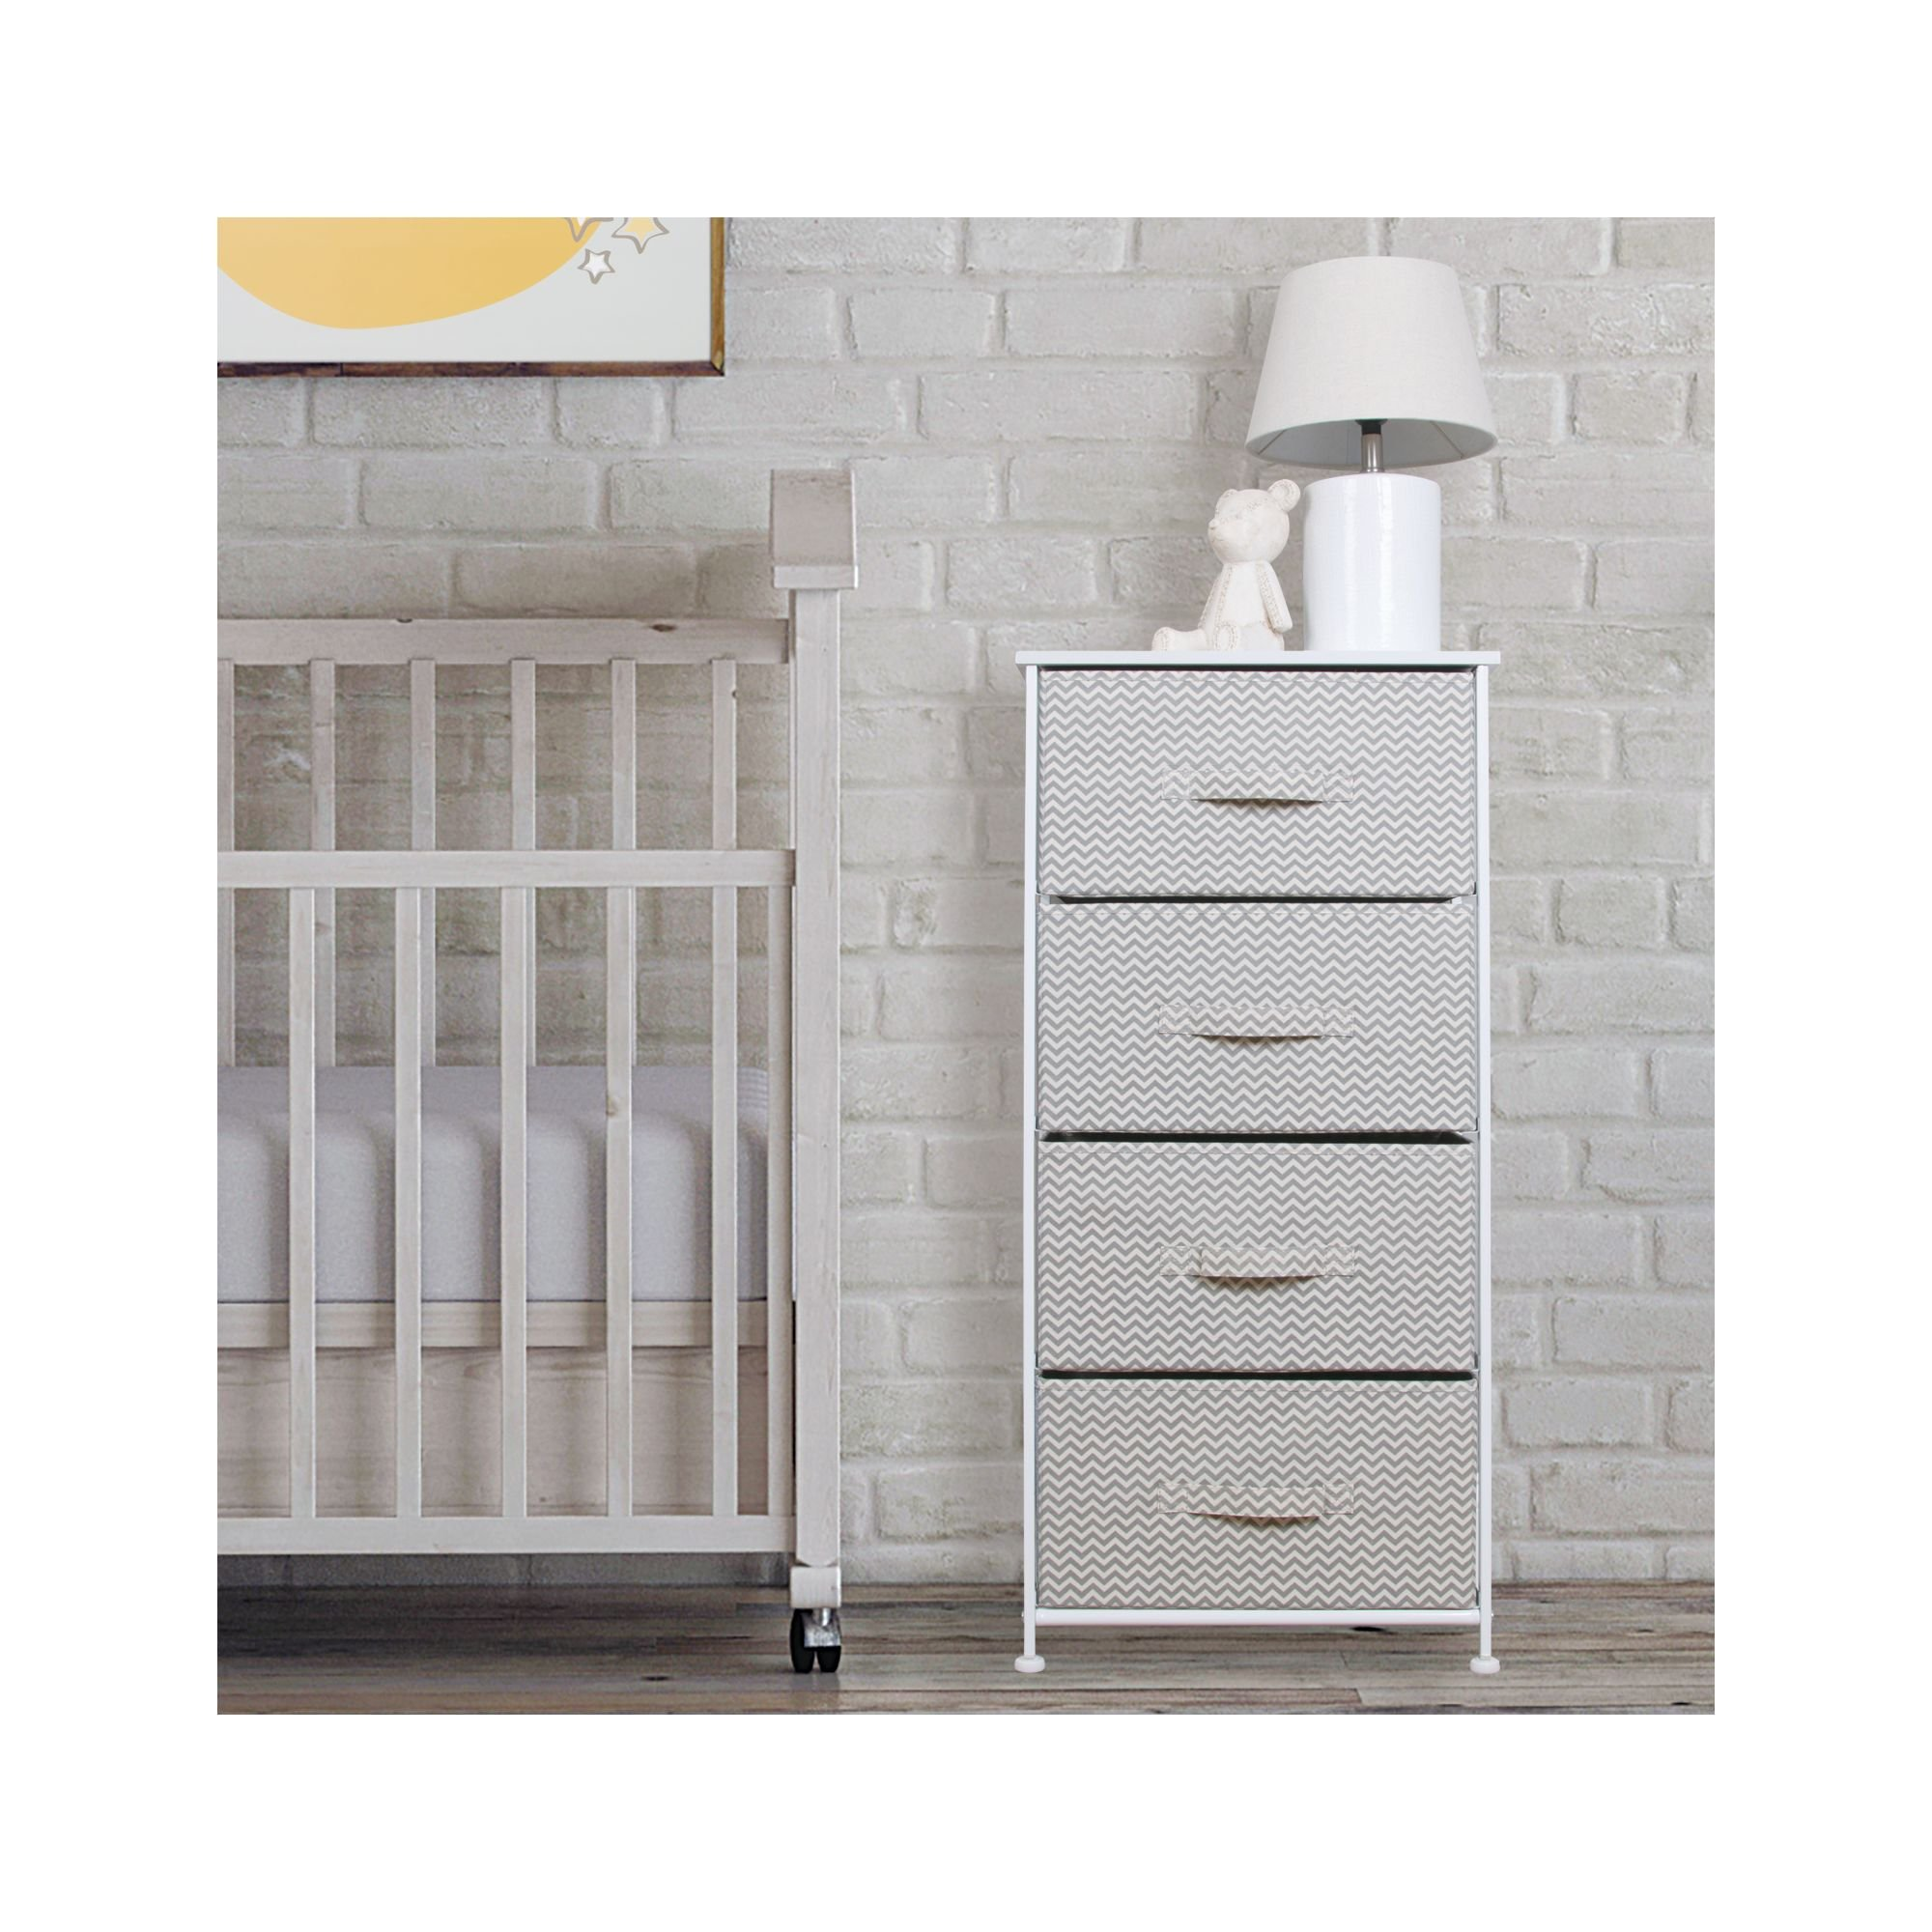 mDesign Vertical Furniture Dresser Storage Tower - Sturdy Steel Frame, Wood Top, Easy Pull Fabric Bins - Organizer for Bedroom, Hallway, Entryway, Closets - Chevron - 4 Drawers, Taupe/Natural/White by mDesign (Image #2)